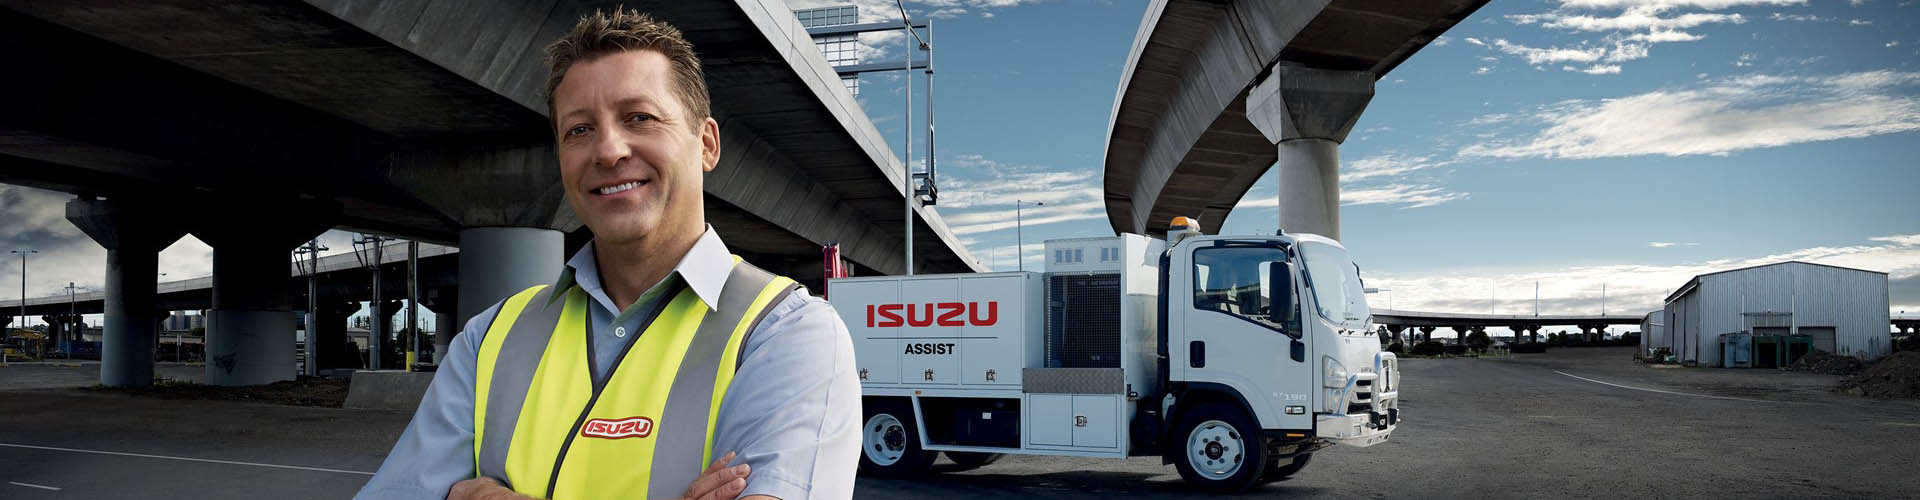 IsuzuTrucks-PB-RoadsideAssist-01-Dec19